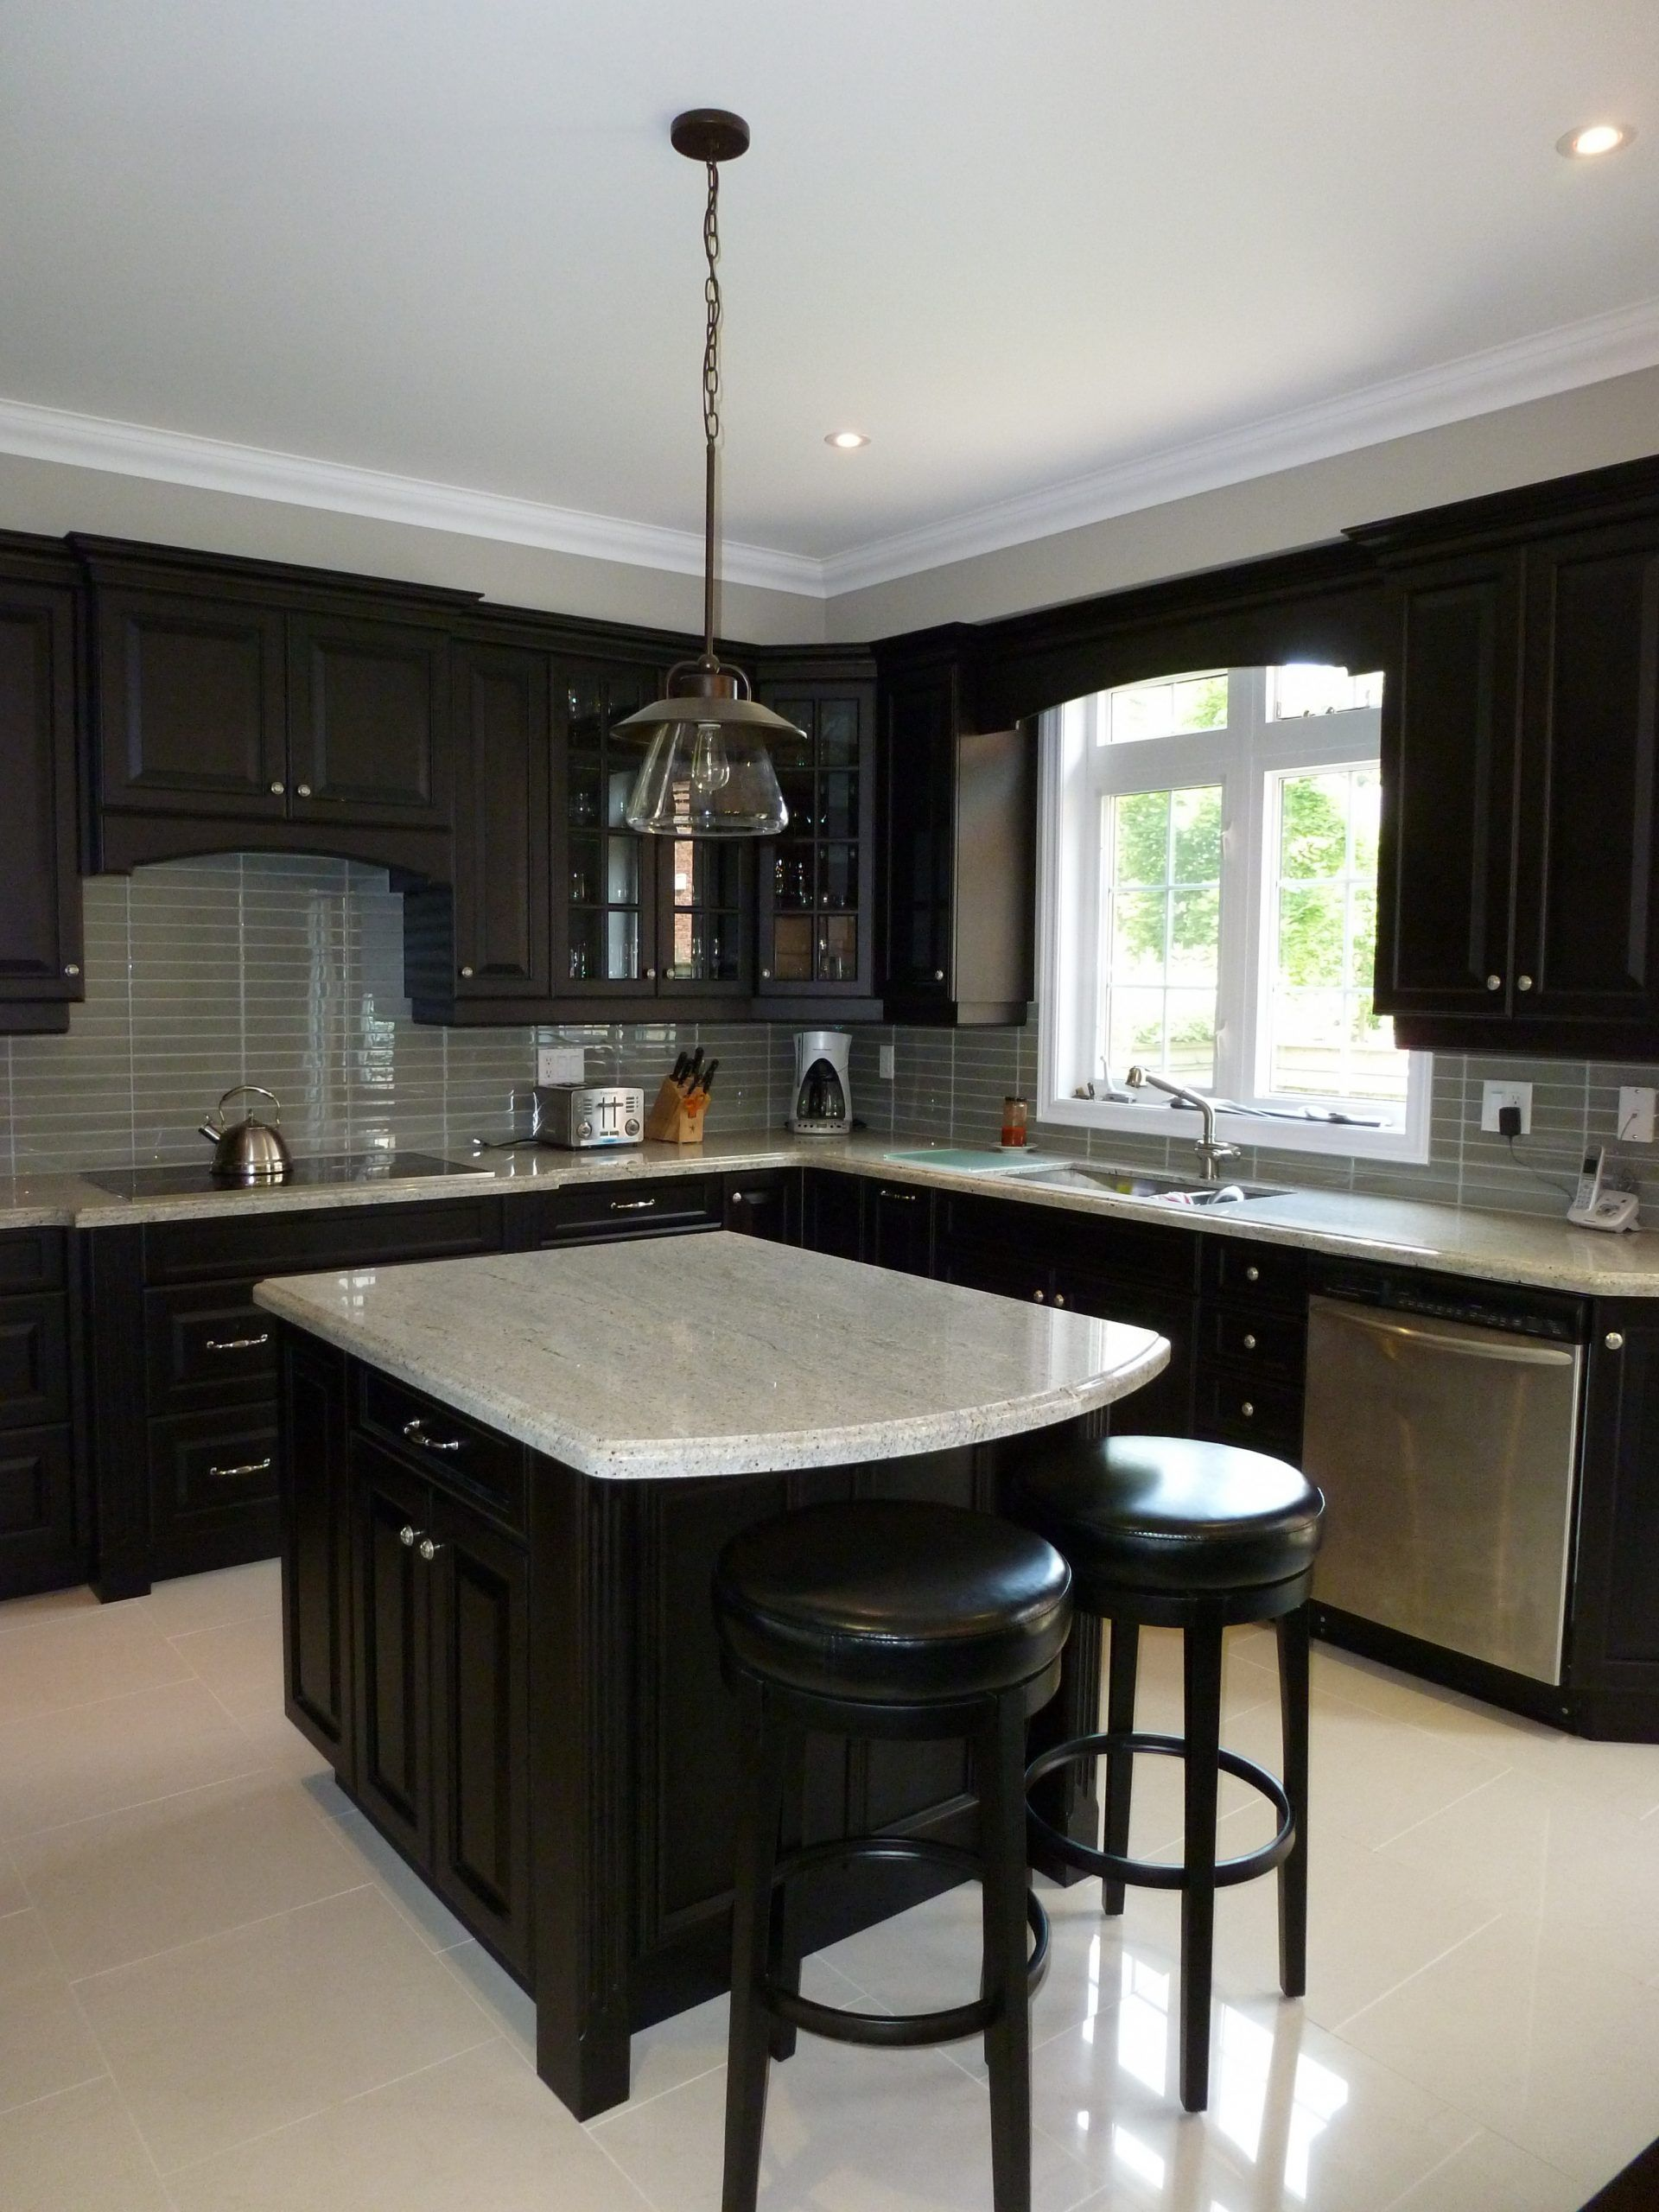 Sears Kitchen Remodeling In 2020 Sears Kitchen Remodel Kitchen Cabinet Remodel Refacing Kitchen Cabinets Cost